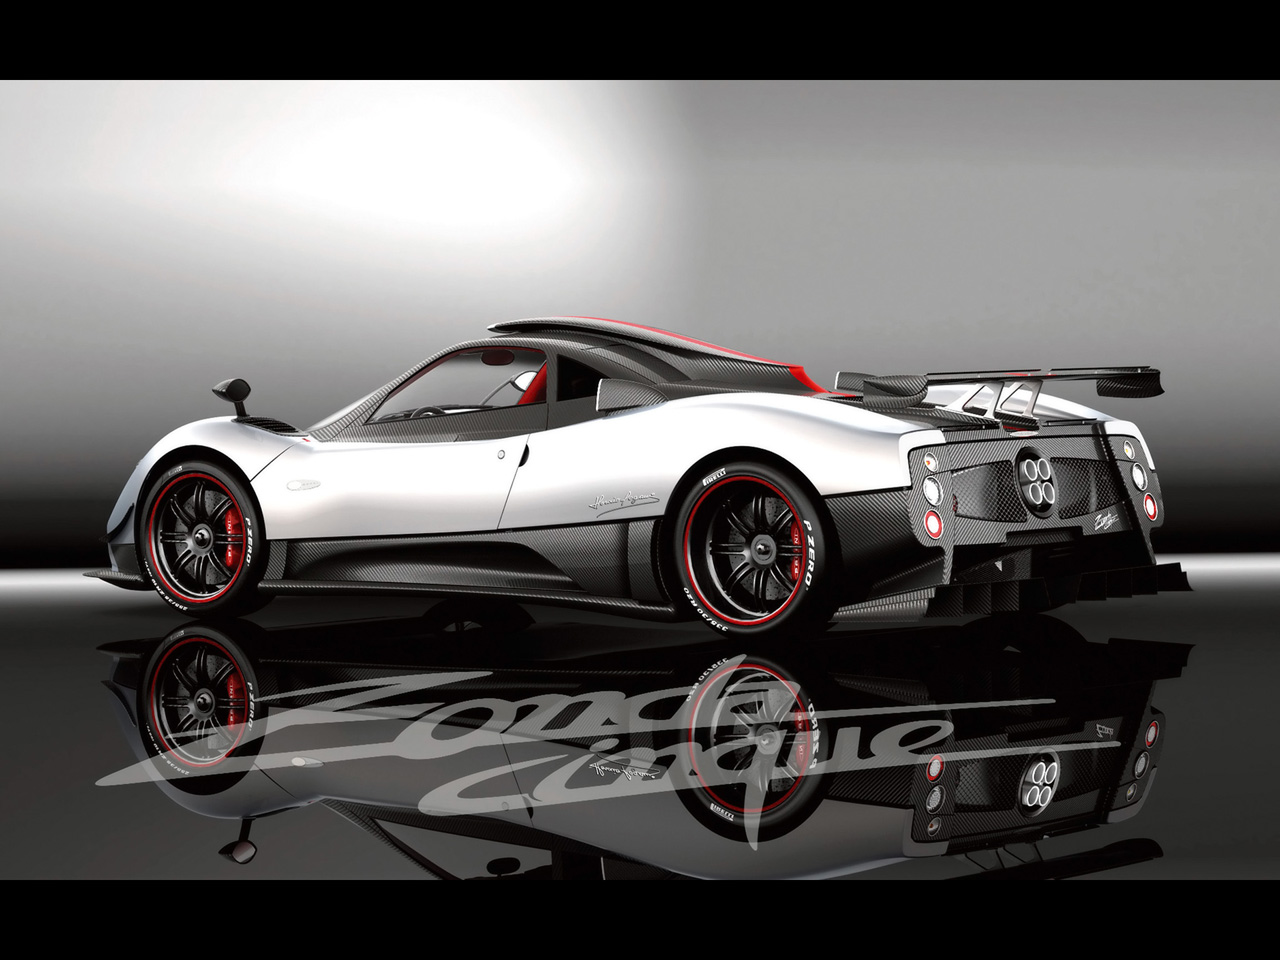 Pagani Zonda Cinque - Top Speed Info - Top Speed Info